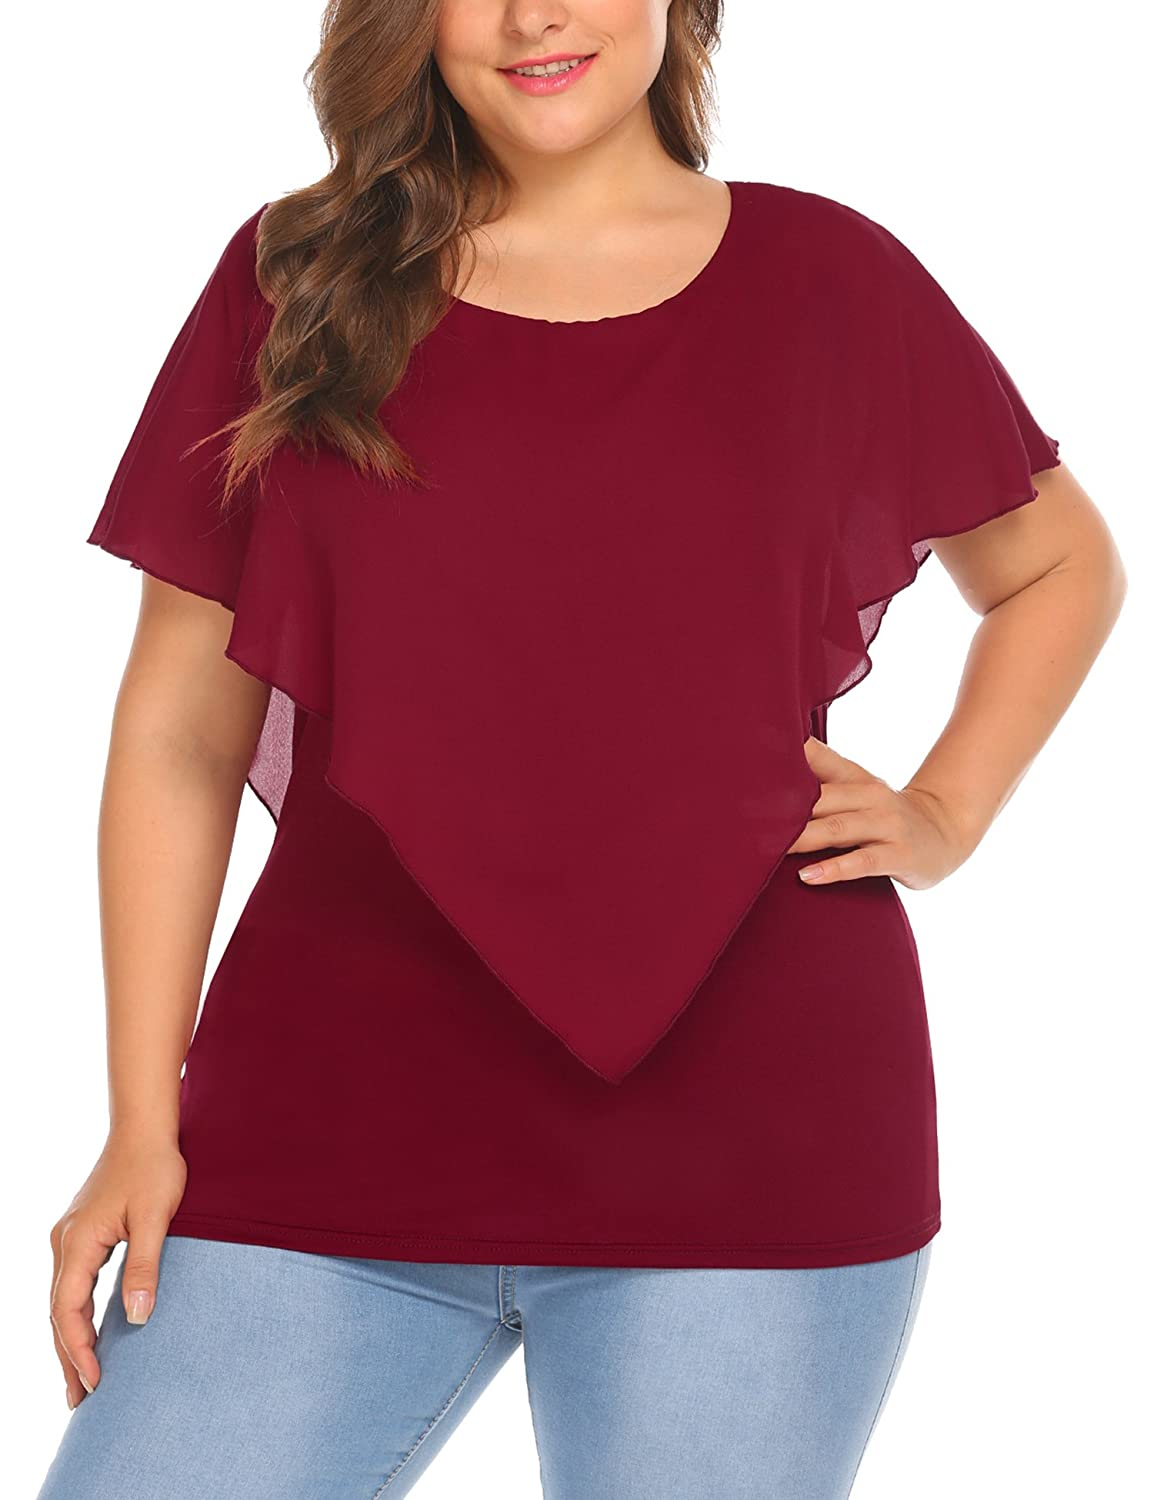 Top 10 wholesale Amazon Plus Size Tops - Chinabrands.com 9ec20e86bad4